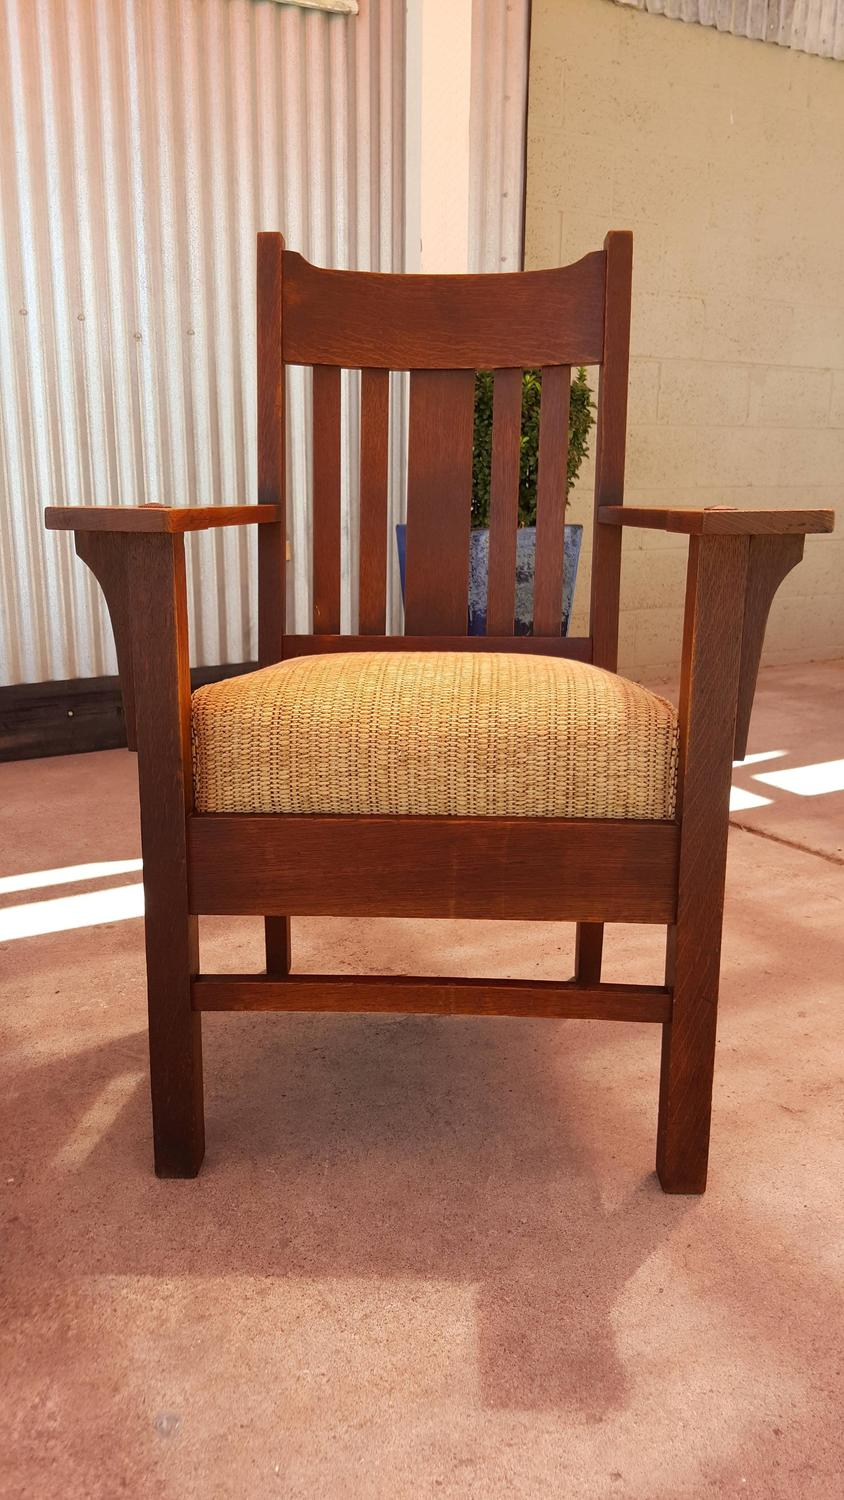 Mission arts and crafts rocker and armchair by harden for Crafting desks for sale